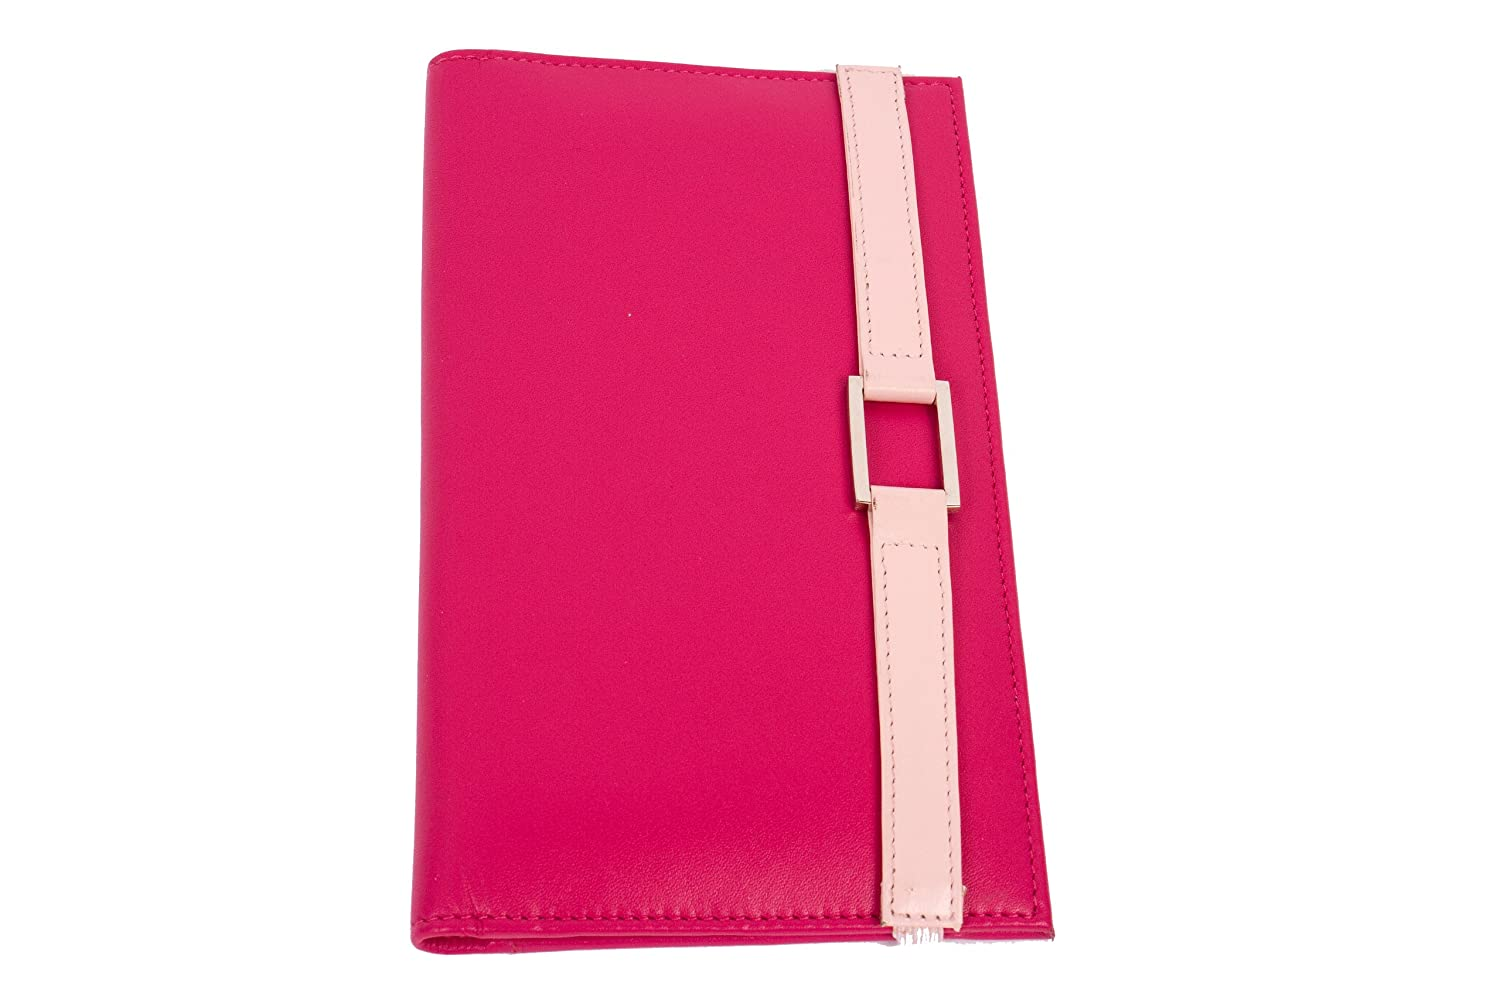 Leather Travel Wallet- Hot Pink with Pale Pink Accent RKW Collection Inc. 2086HPPP